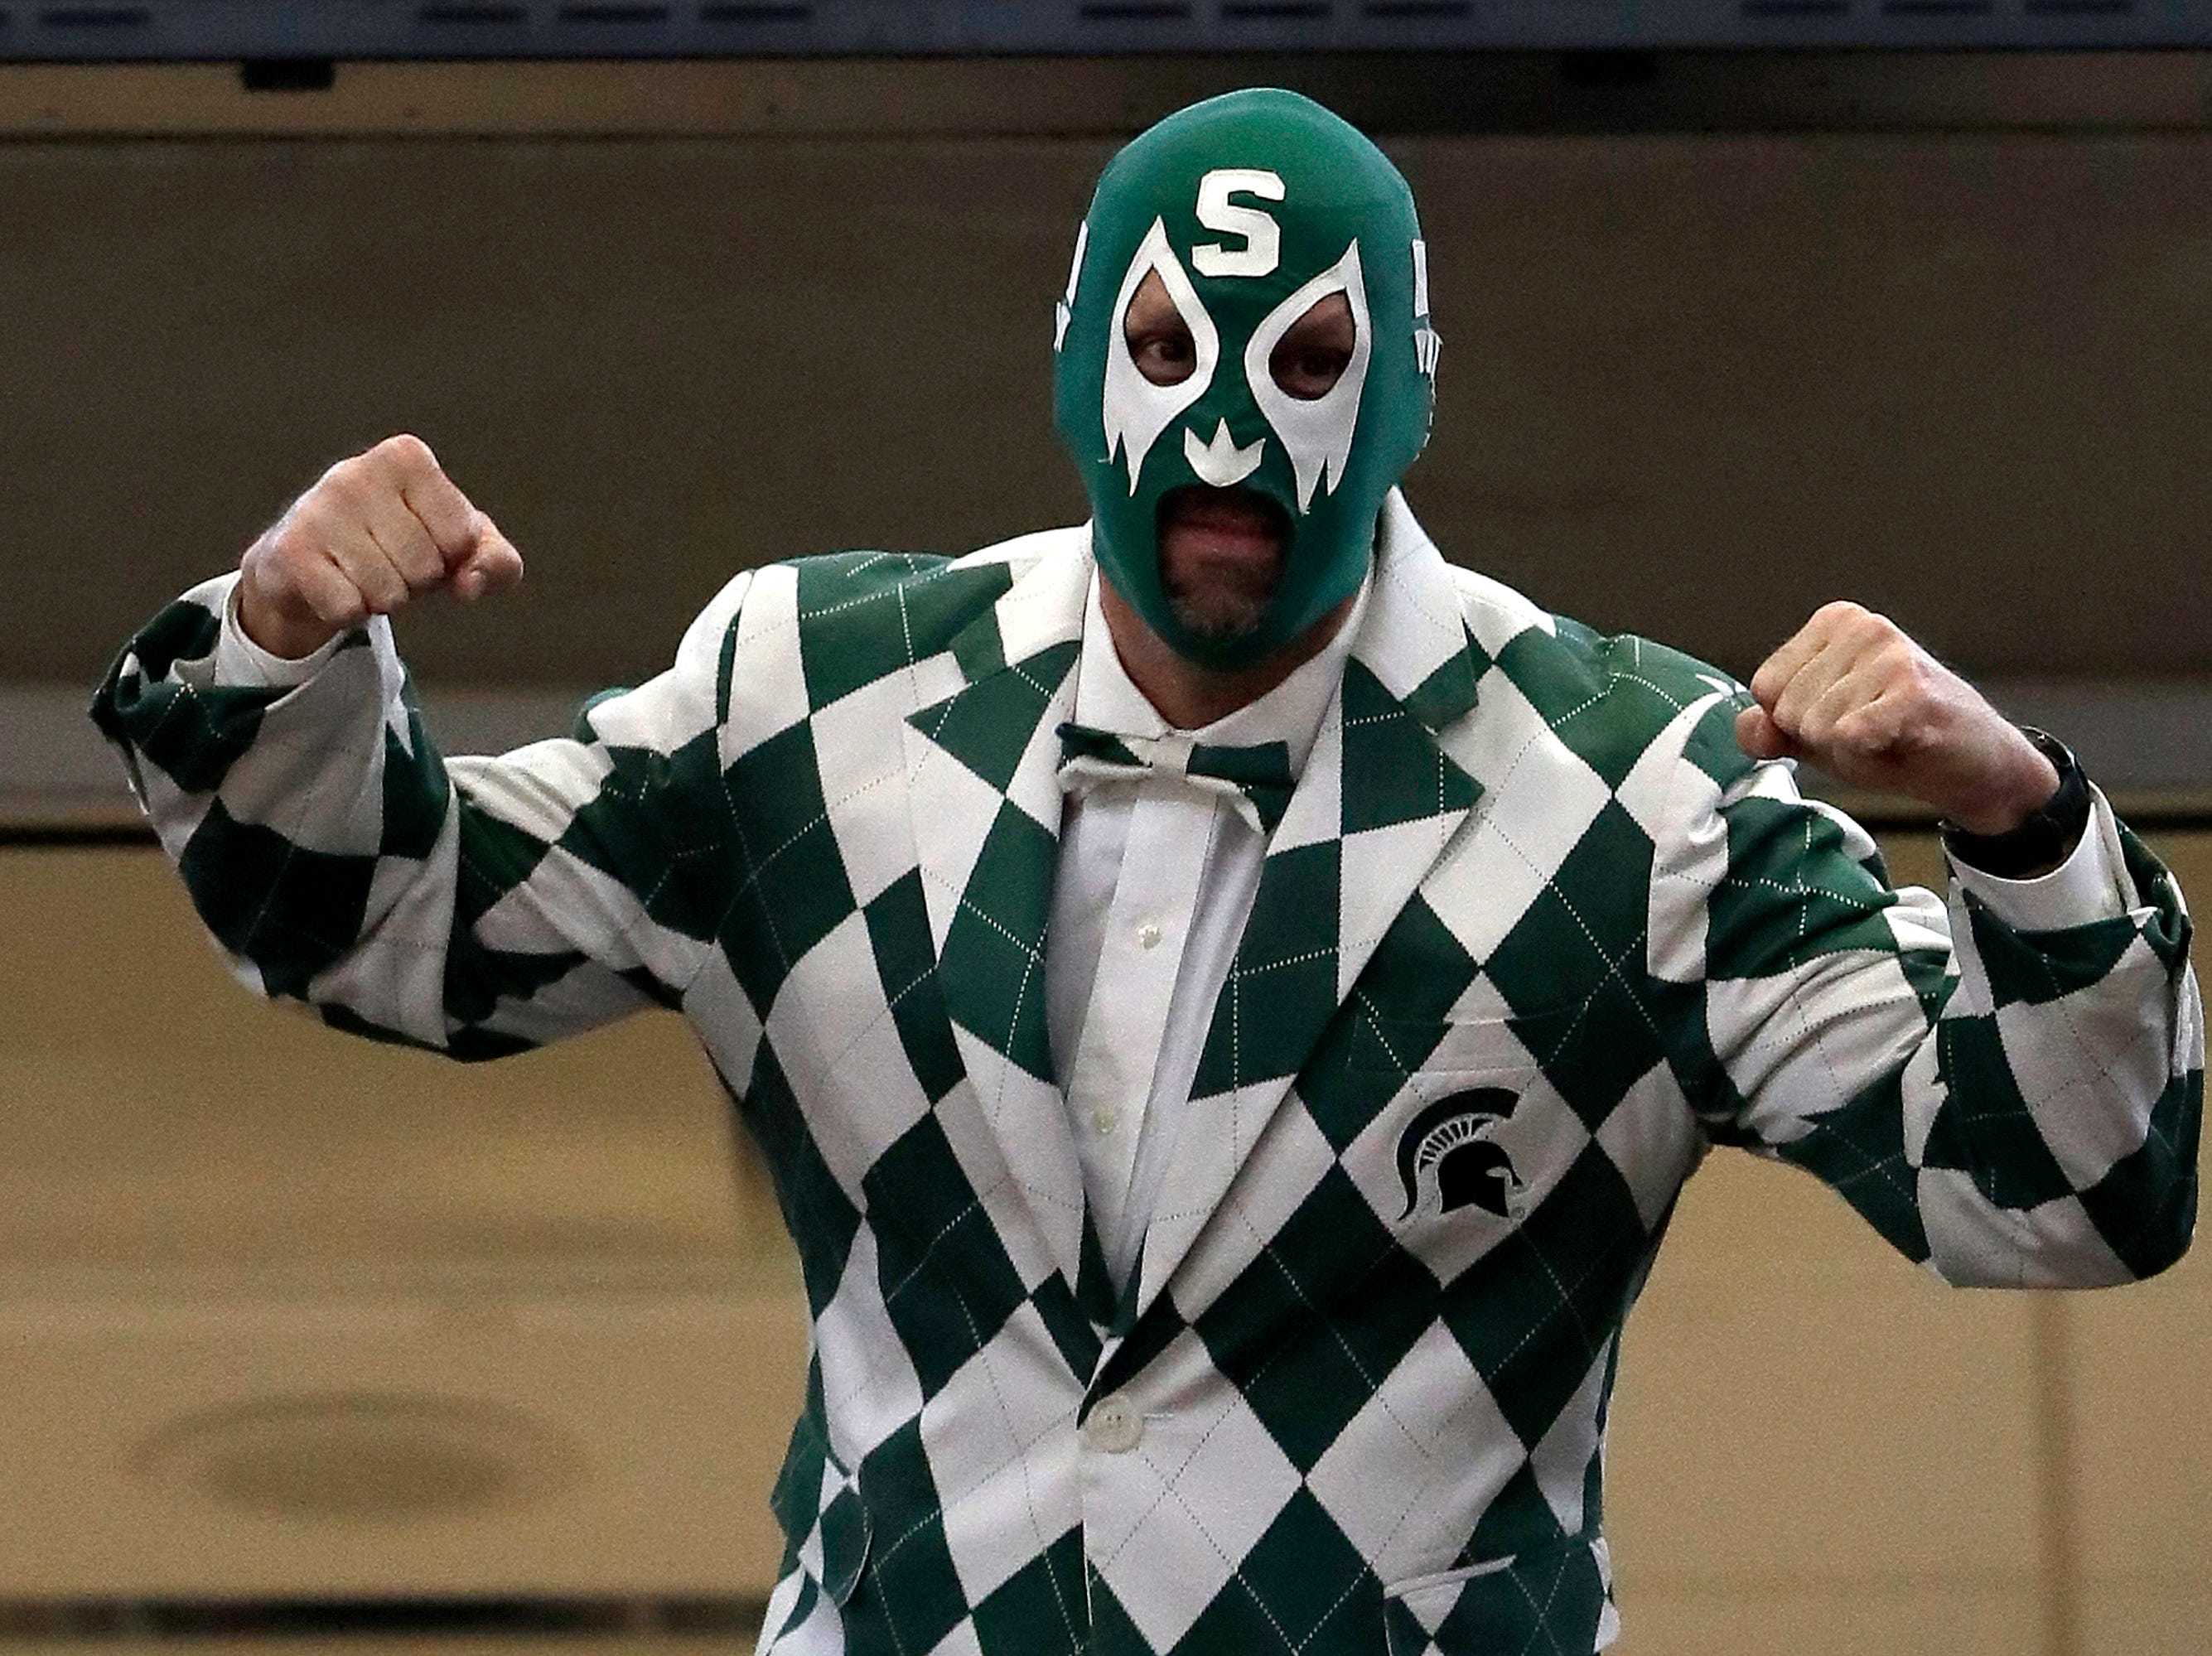 A Michigan State fan poses as he cheer during the first half of an NCAA college basketball game between Michigan State and Wisconsin in the semifinals of the Big Ten Conference tournament, Saturday, March 16, 2019, in Chicago.